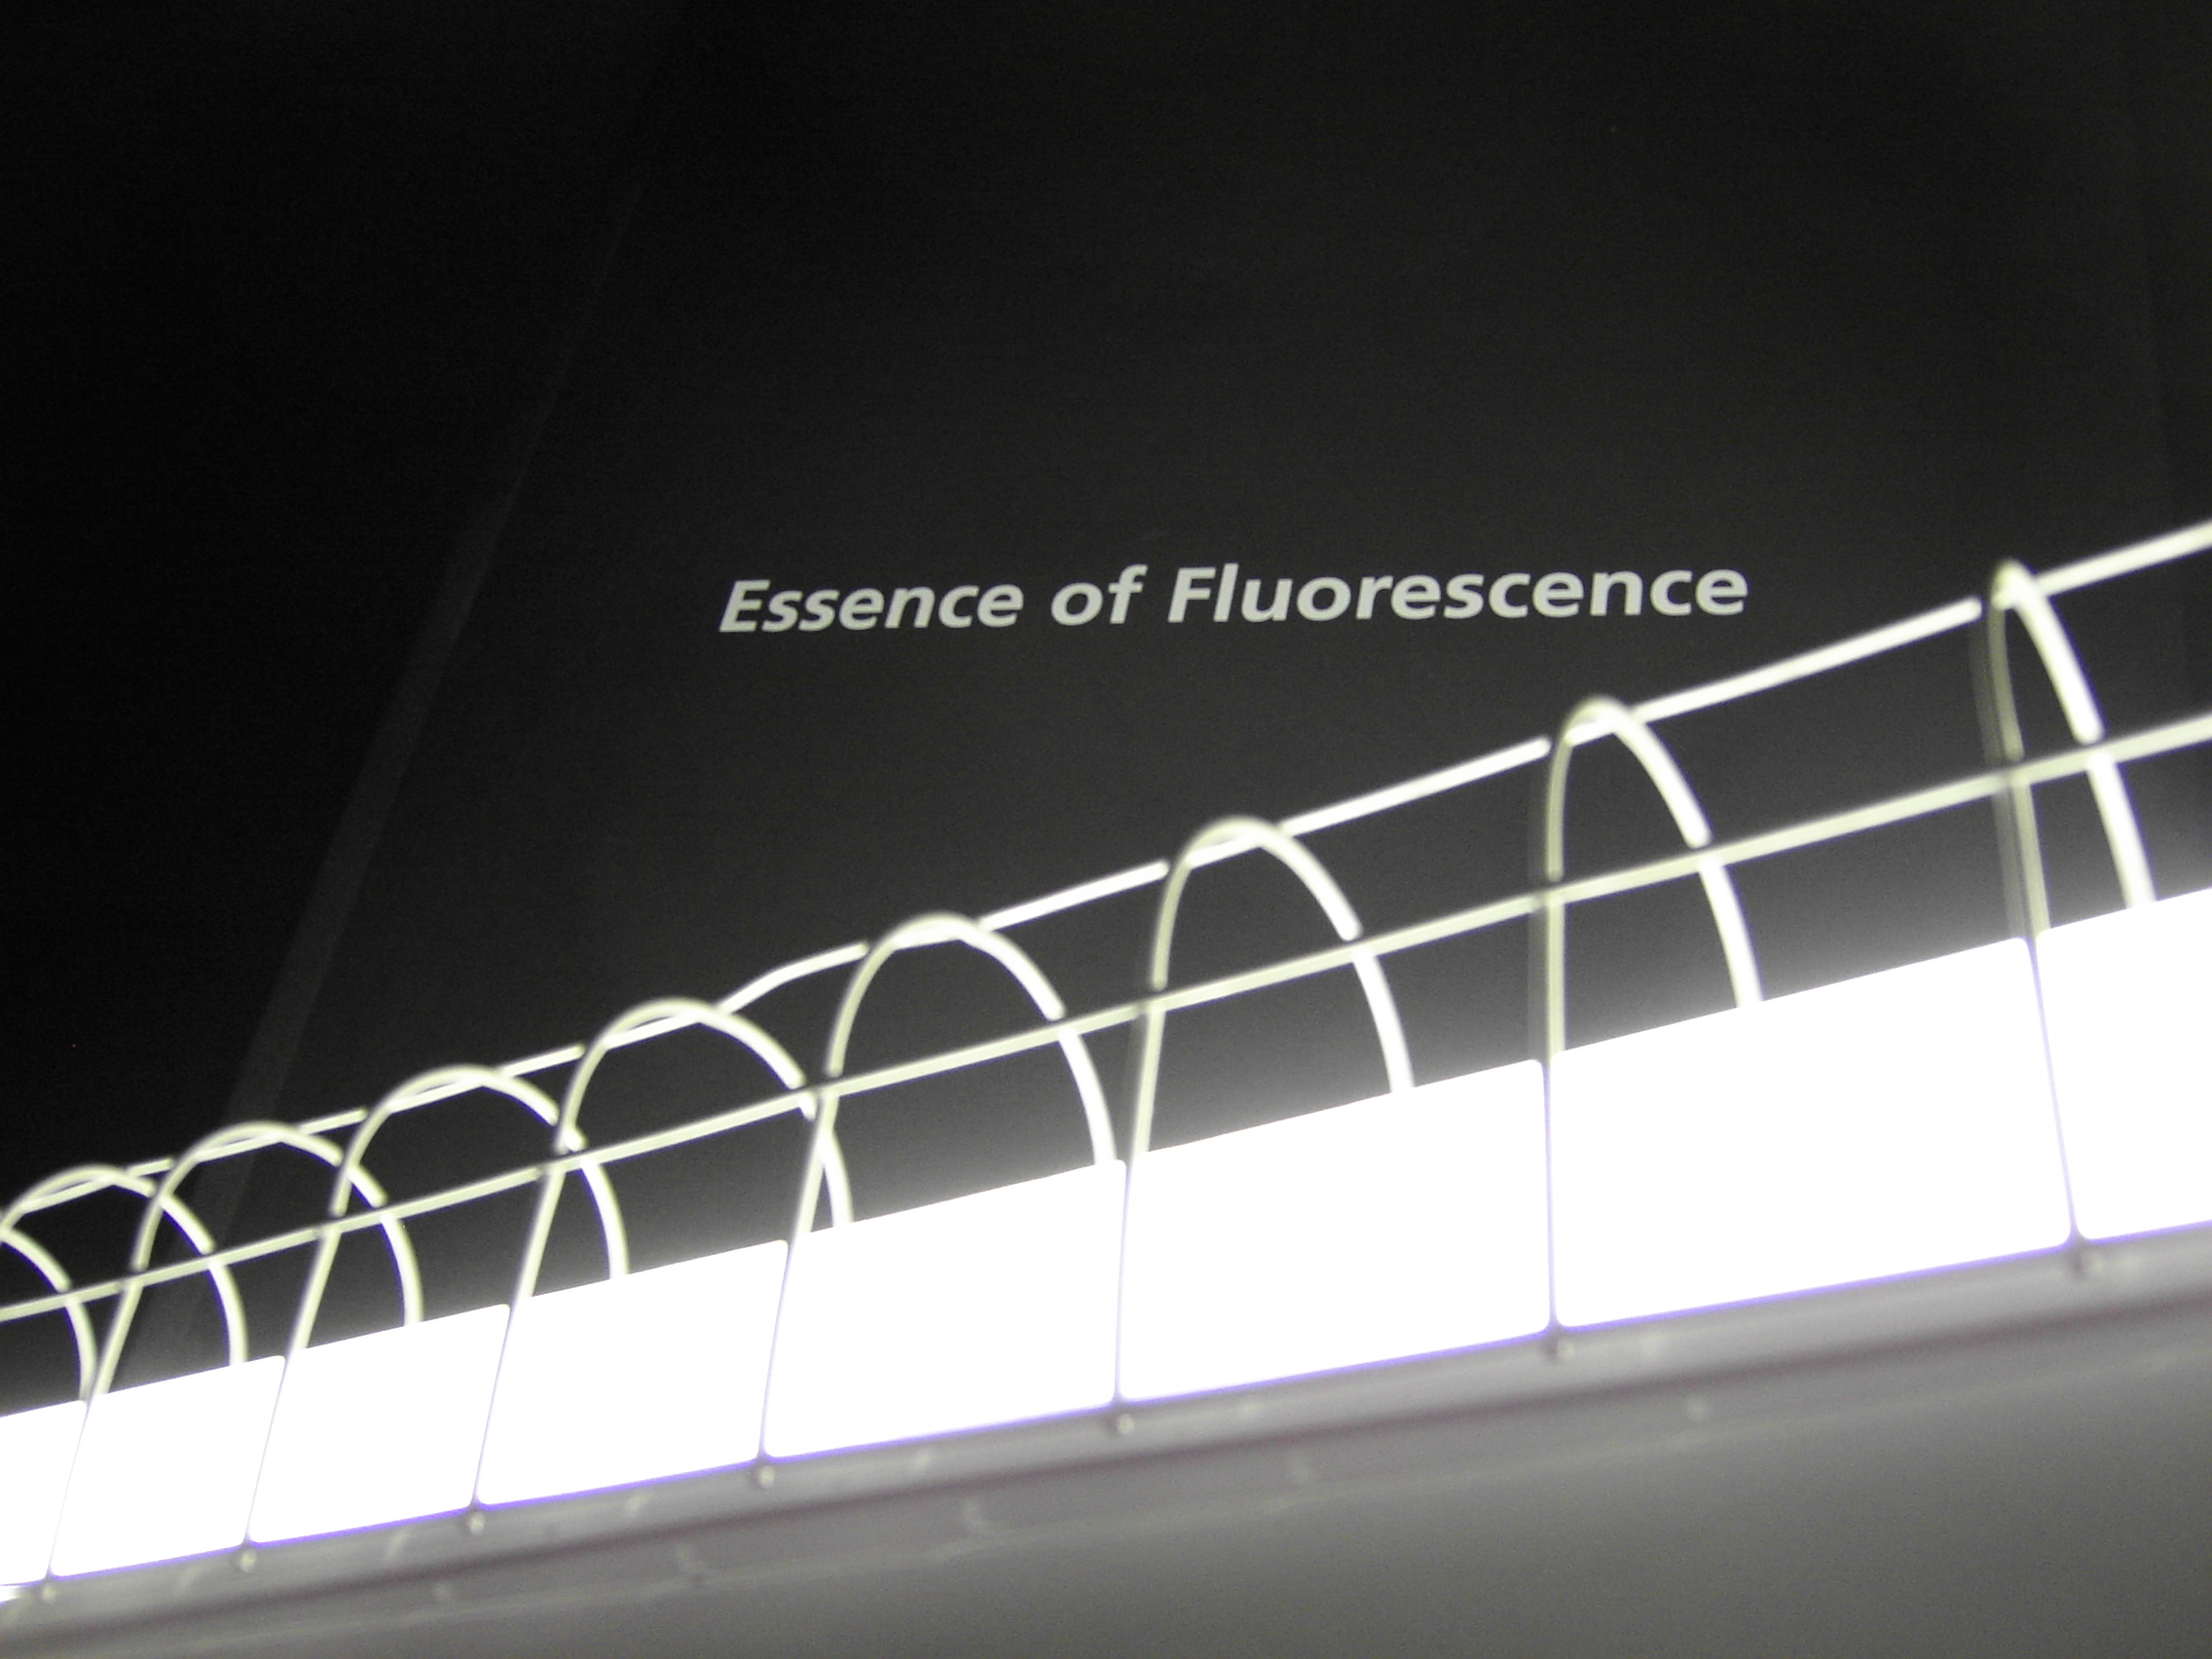 The Essence of Fluorescence   at The Hayward Gallery, 2006.